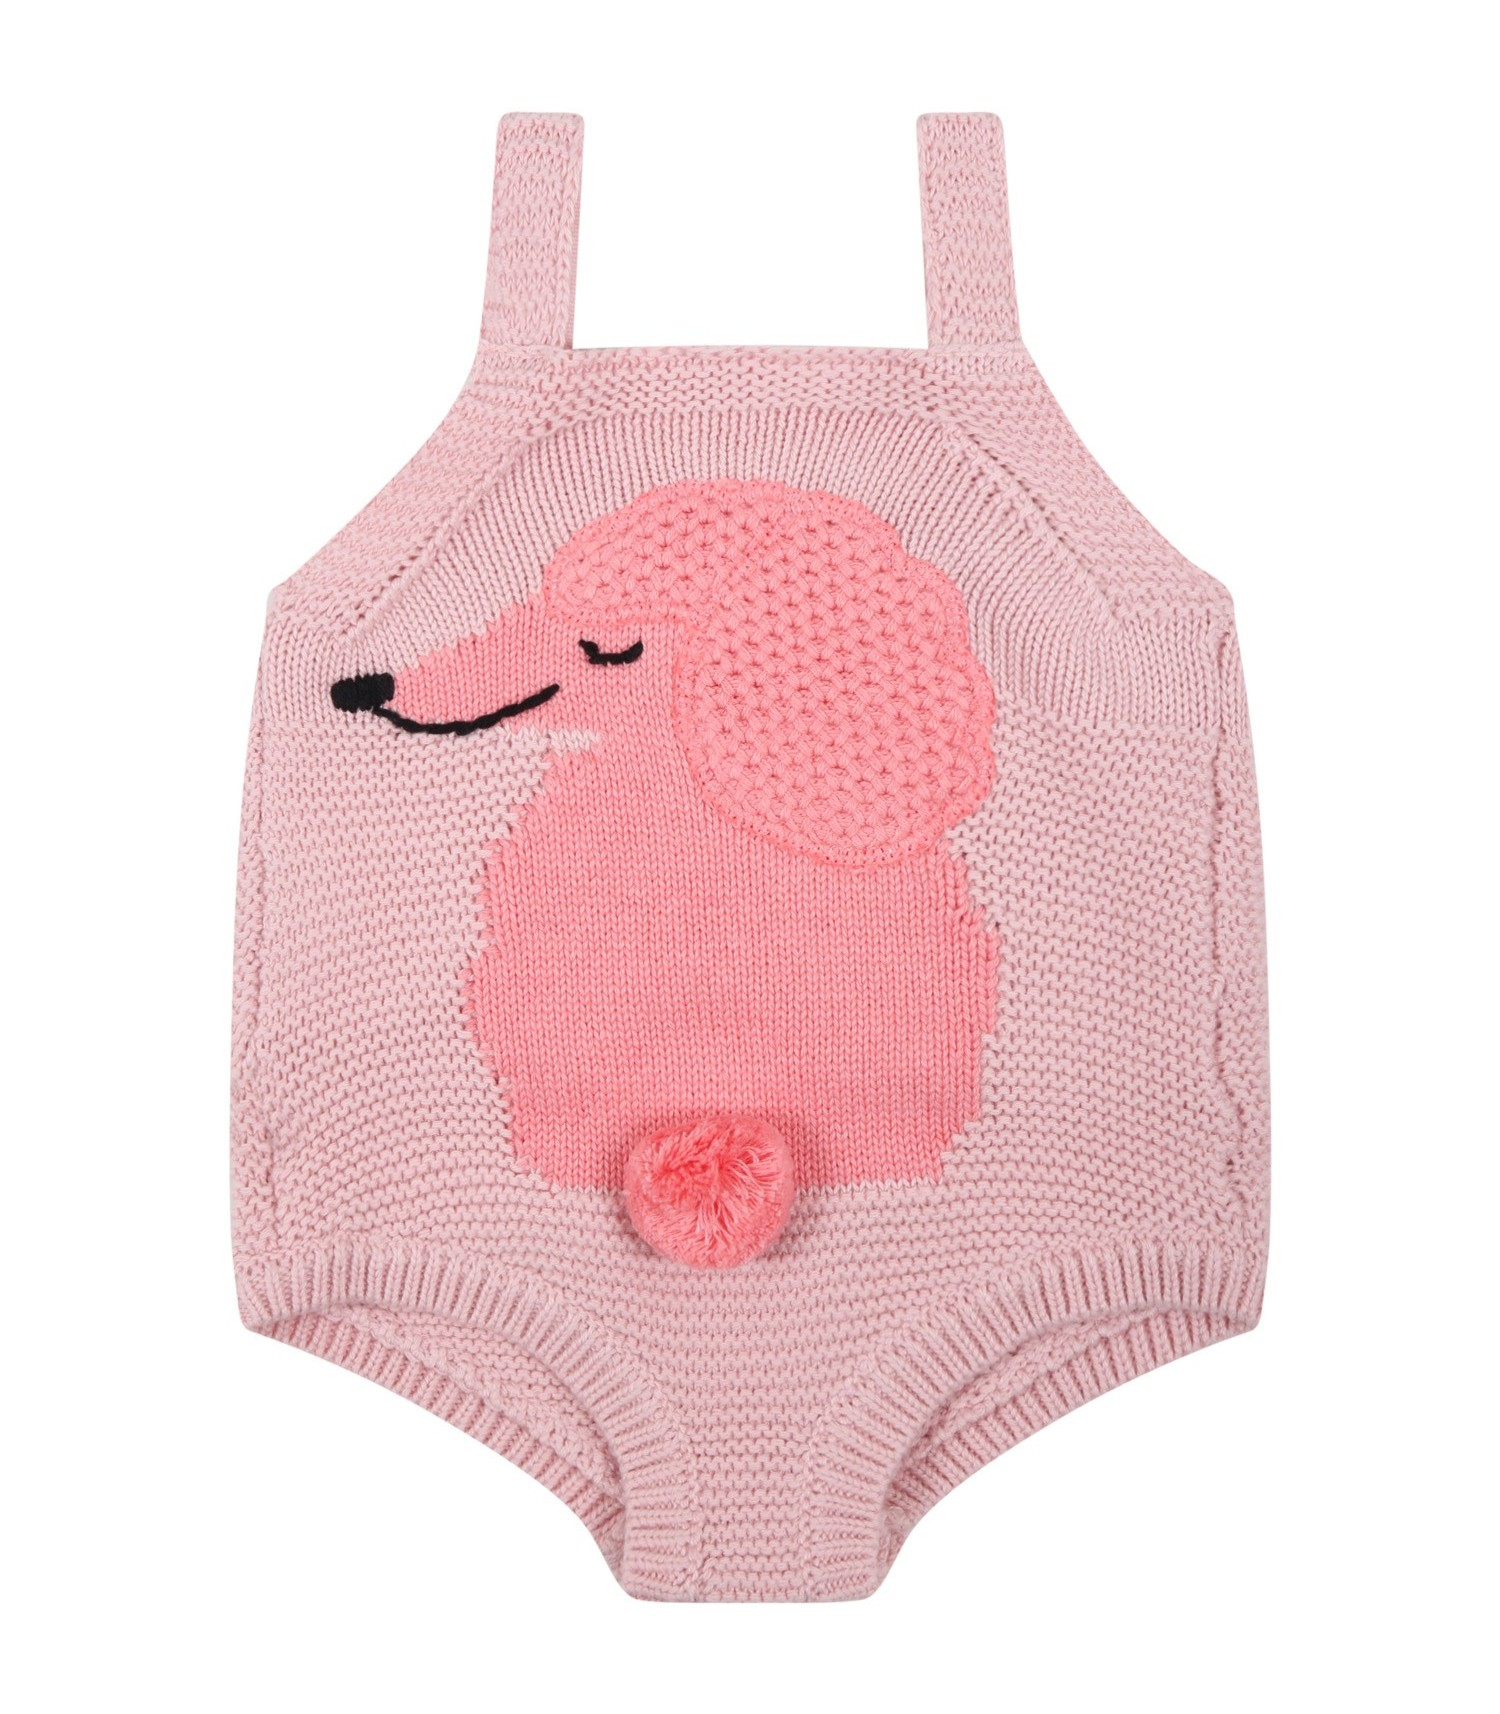 Stella Mccartney Kids Pink body for baby girl with pink dog